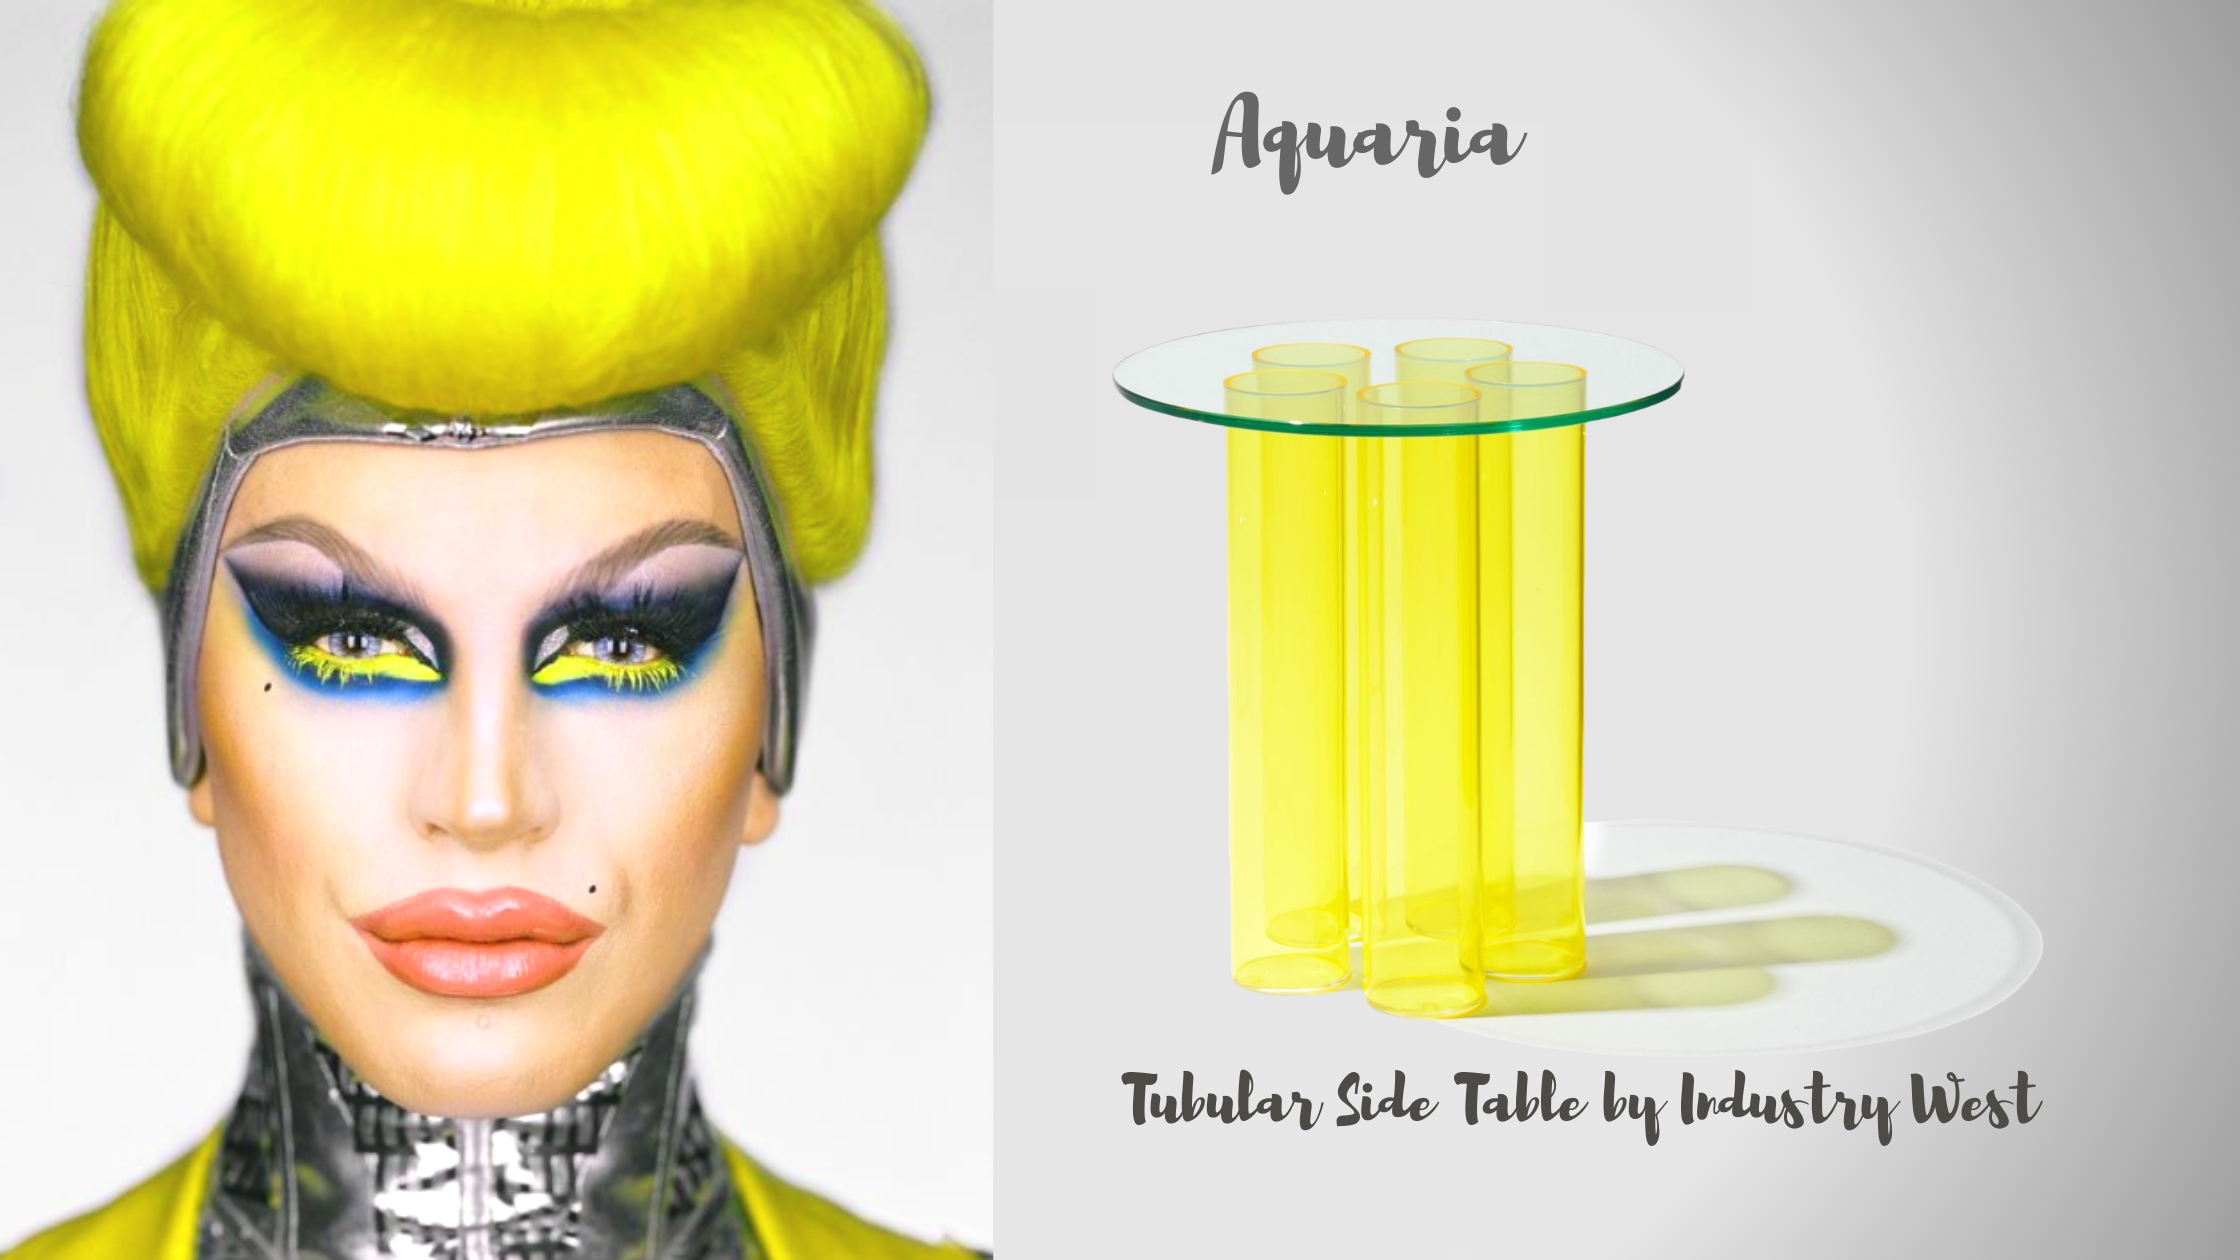 Drag Queen Aquaria Image and the bright yellow Tubular Side Table by Industry West